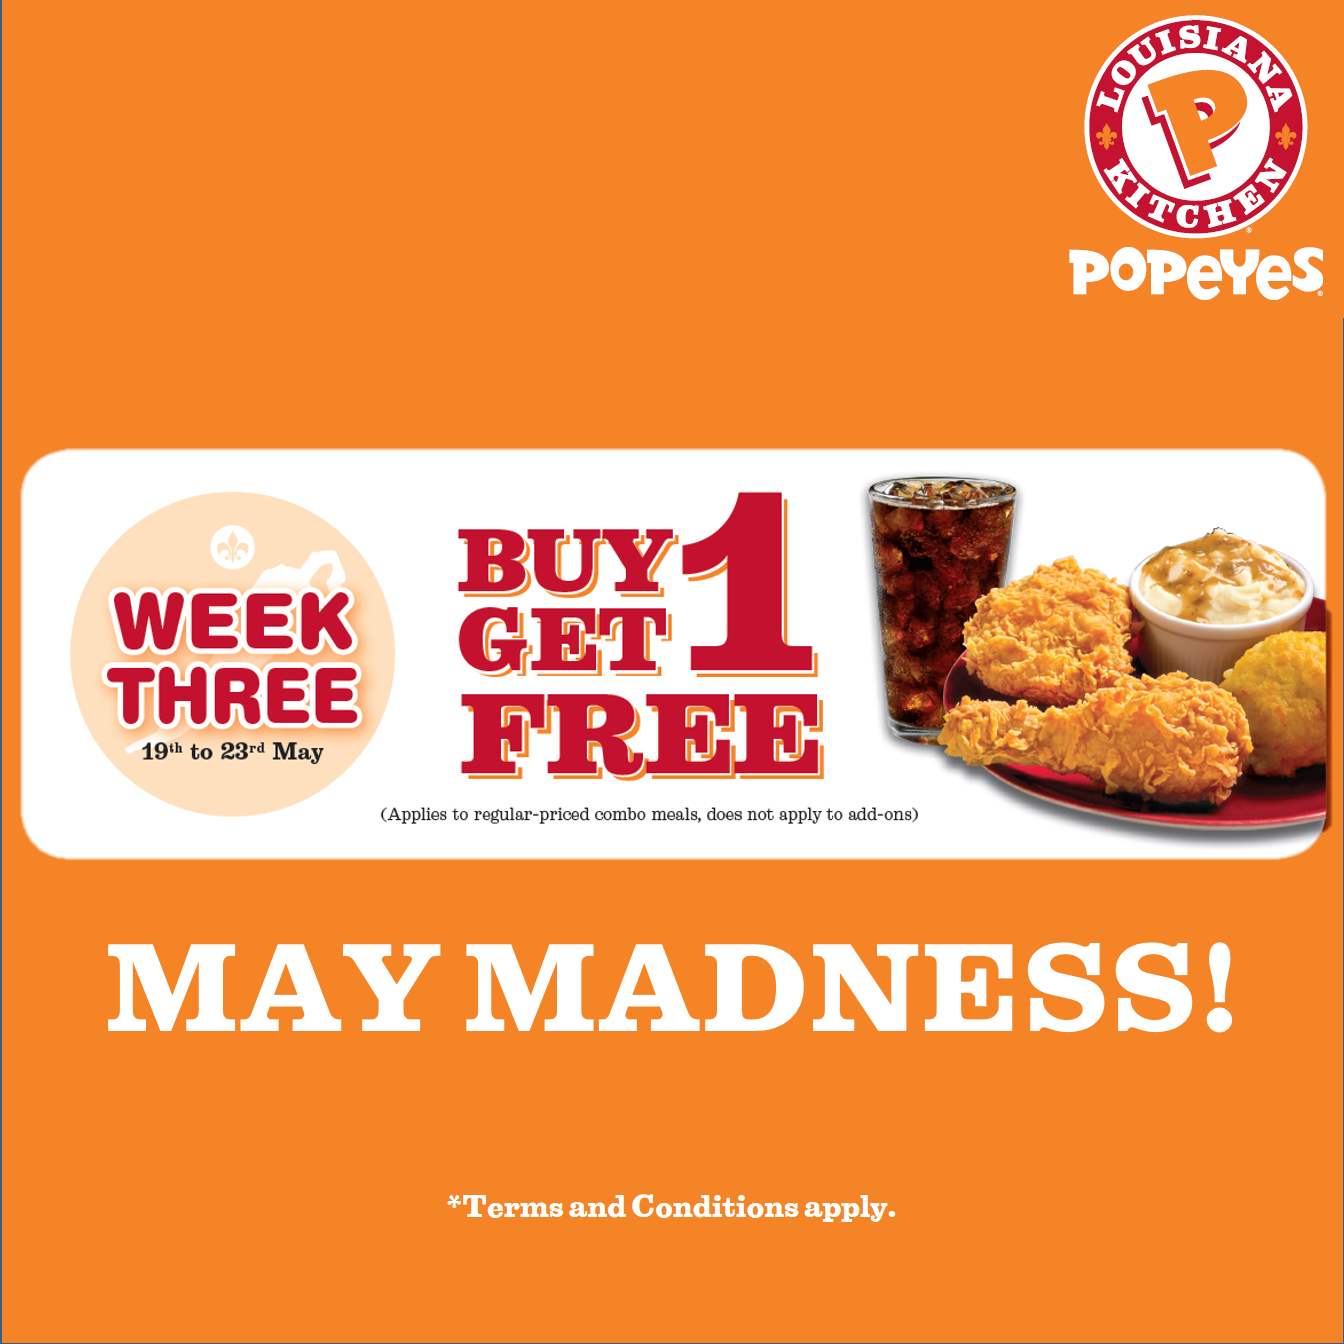 Get exclusive coupons and specials when you sign up for Popeyes email updates. Never miss another coupon. Be the first to learn about new coupons and deals for popular brands like Popeyes with the Coupon Sherpa weekly newsletters.